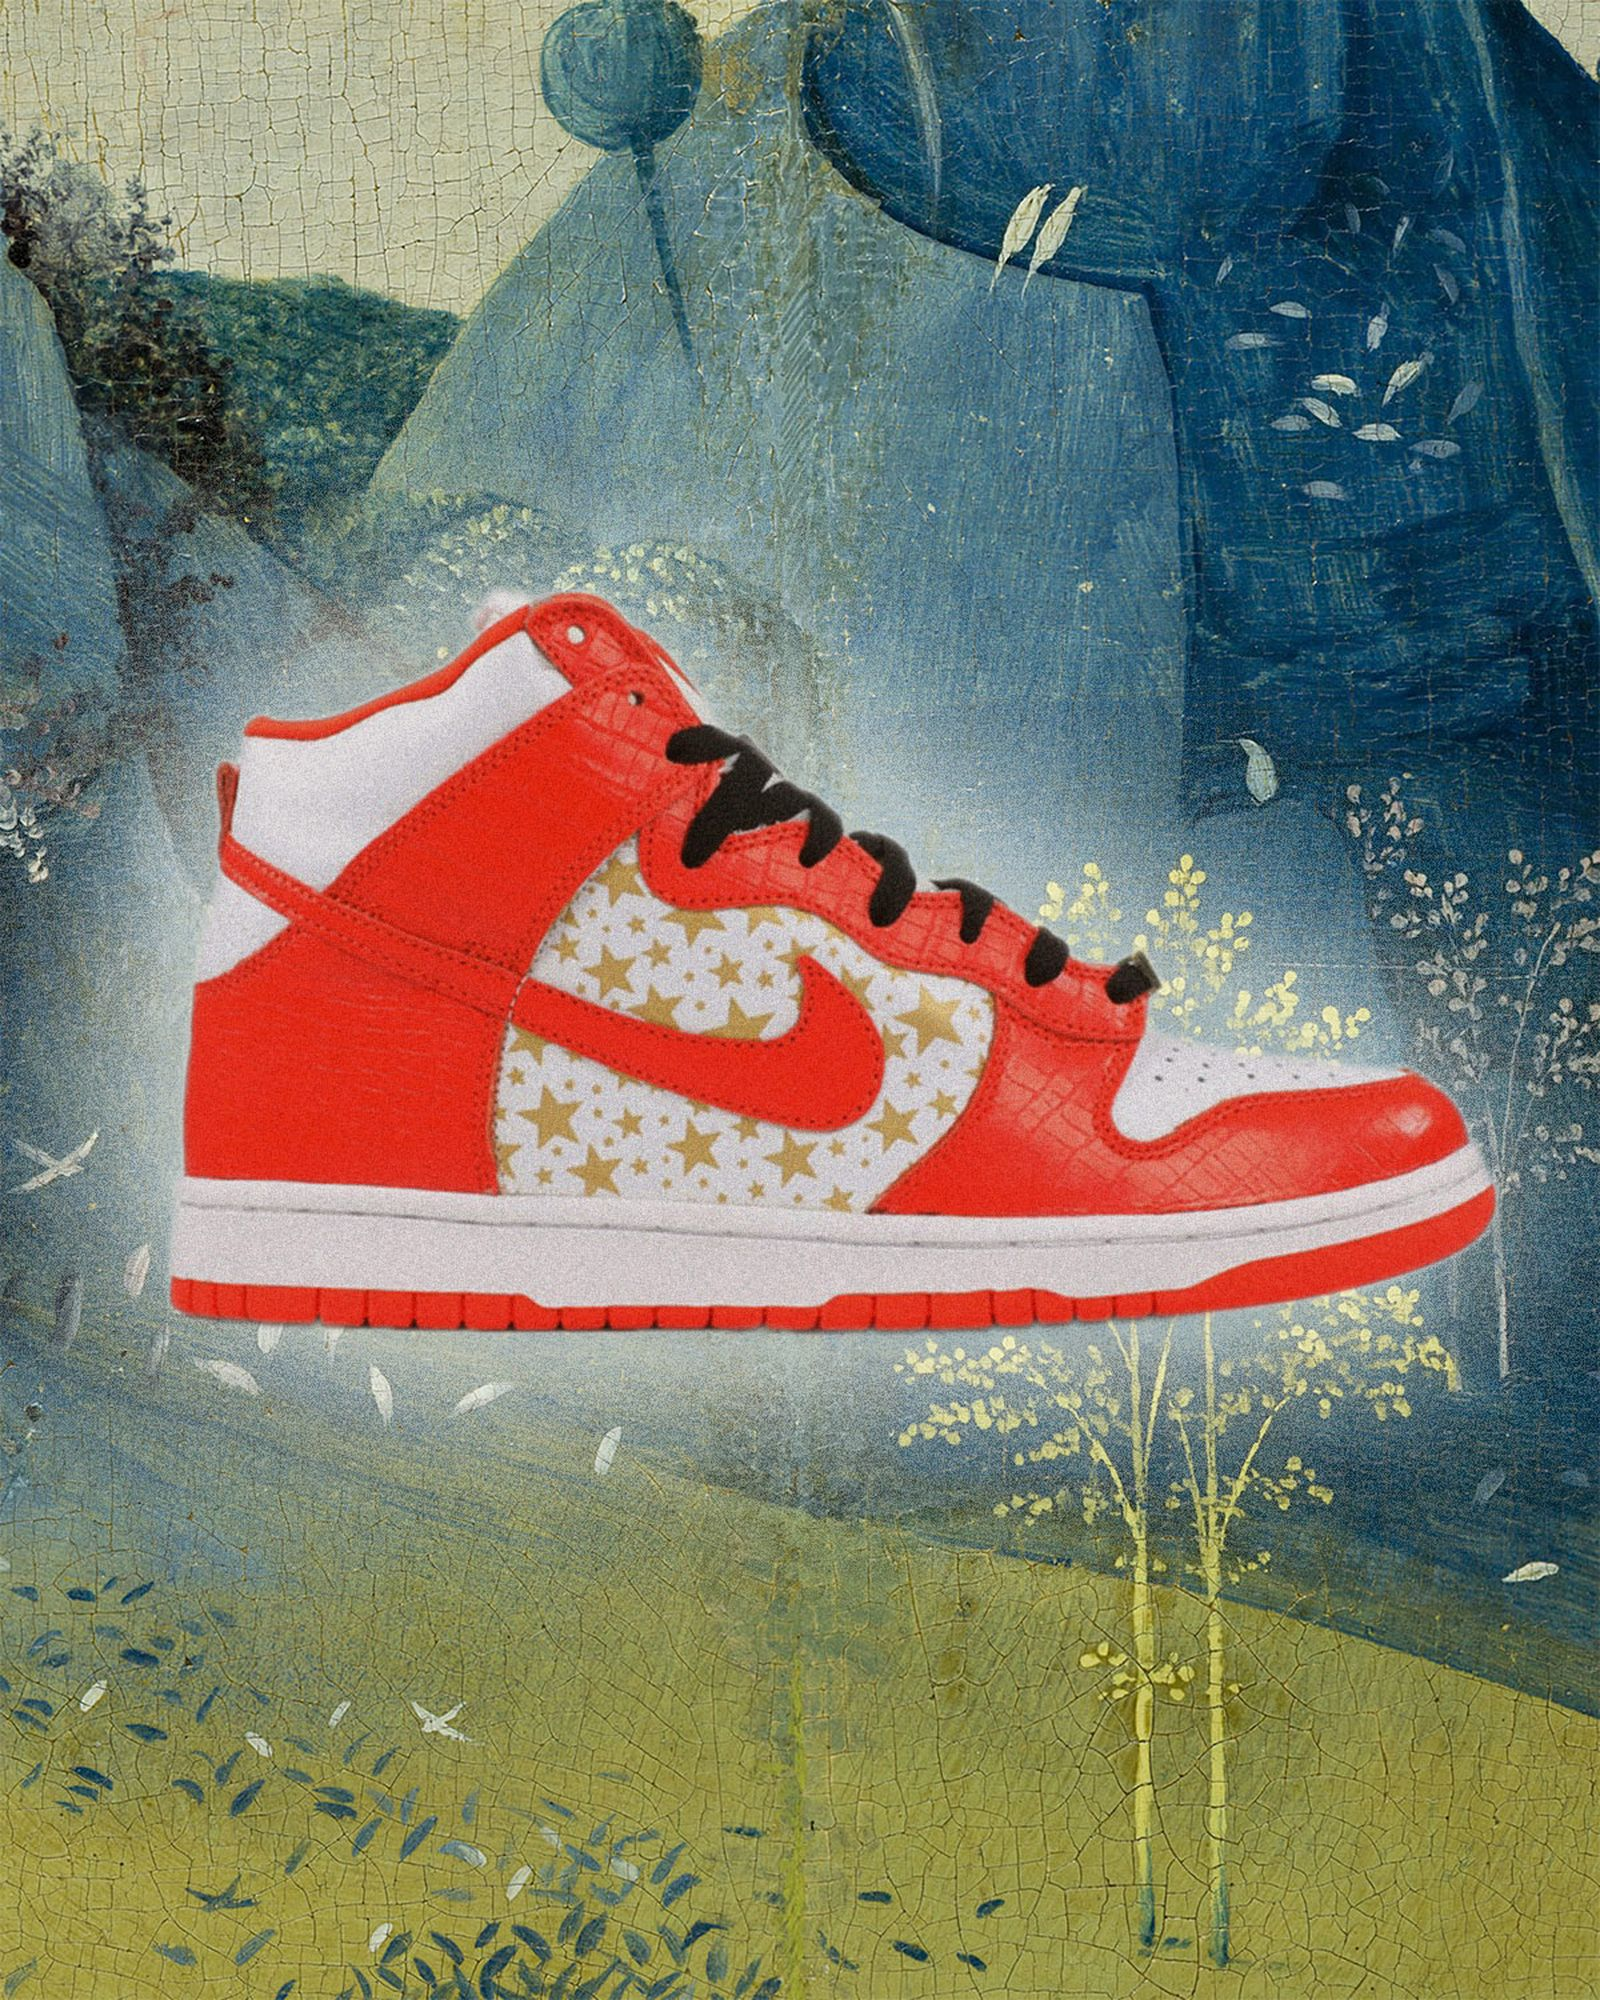 Nike-Dunk-High Pro-SB-Supreme Orange-Stars